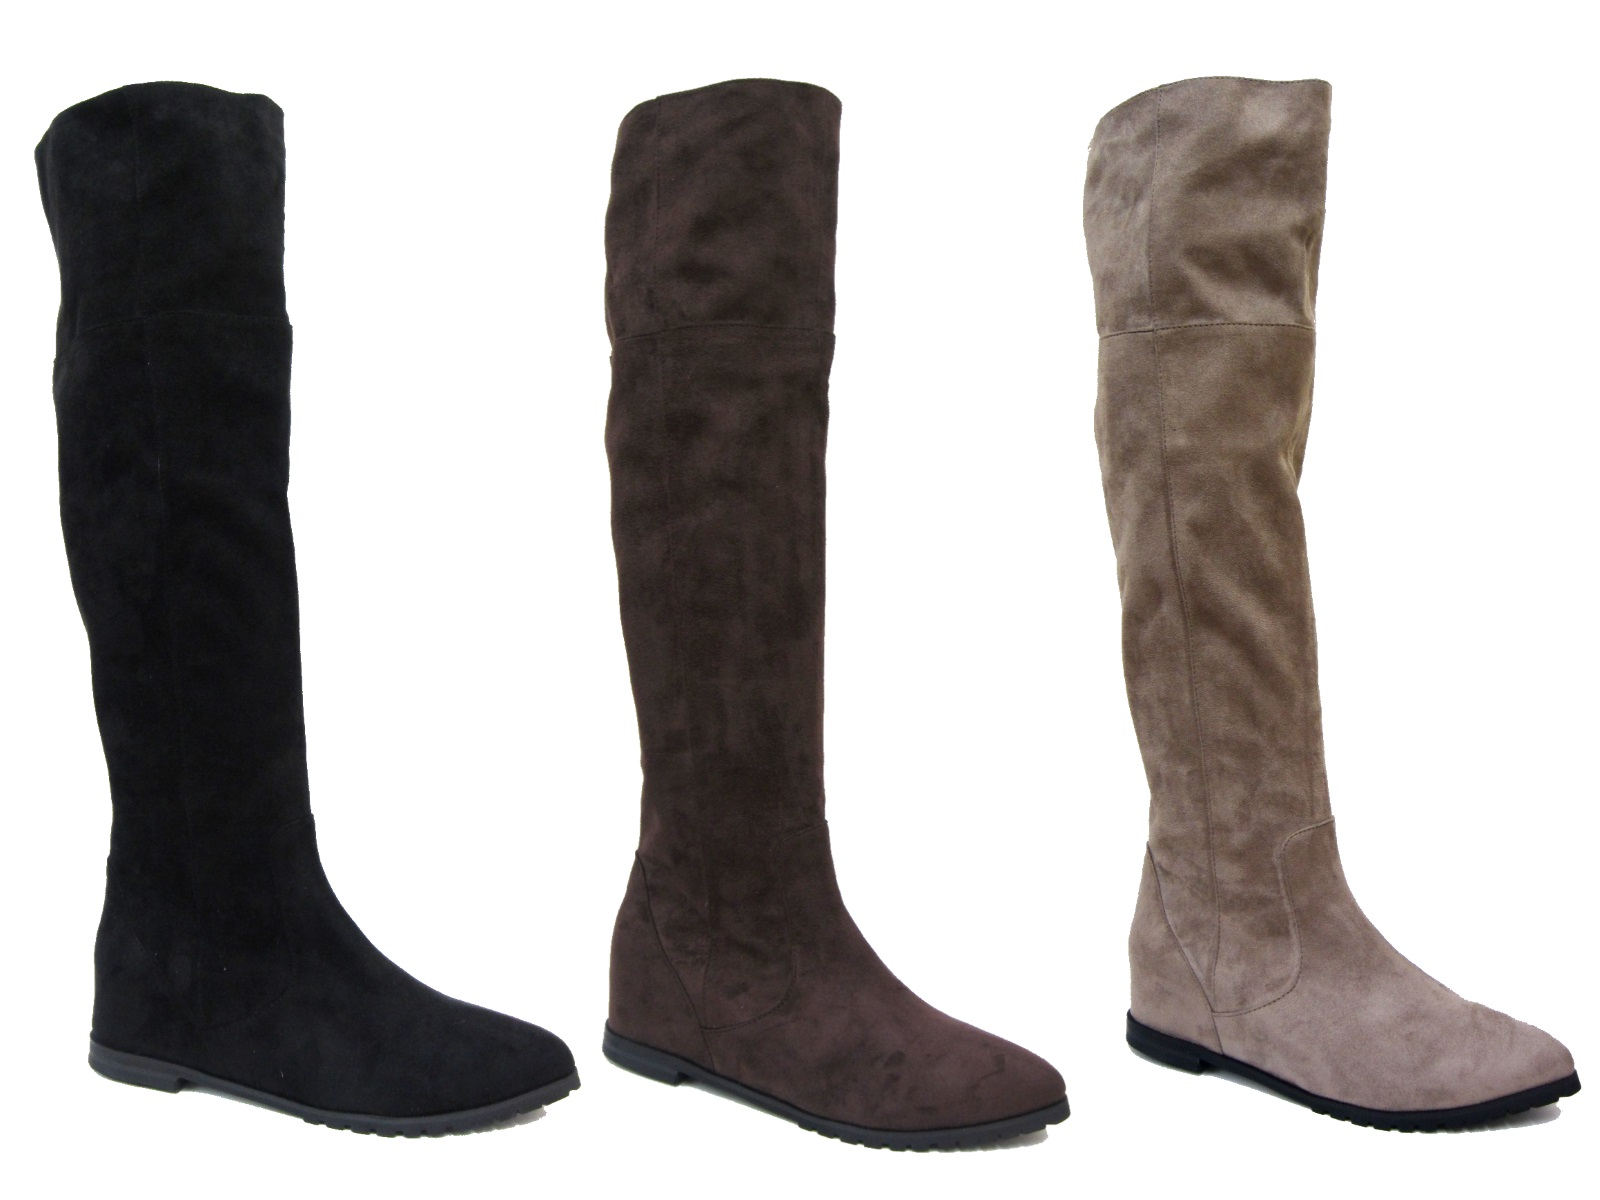 4614fc0d7c1 Womens Faux Suede Leather Flat Riding Knee High Boots Ladies Shoes Size UK  3 - 8